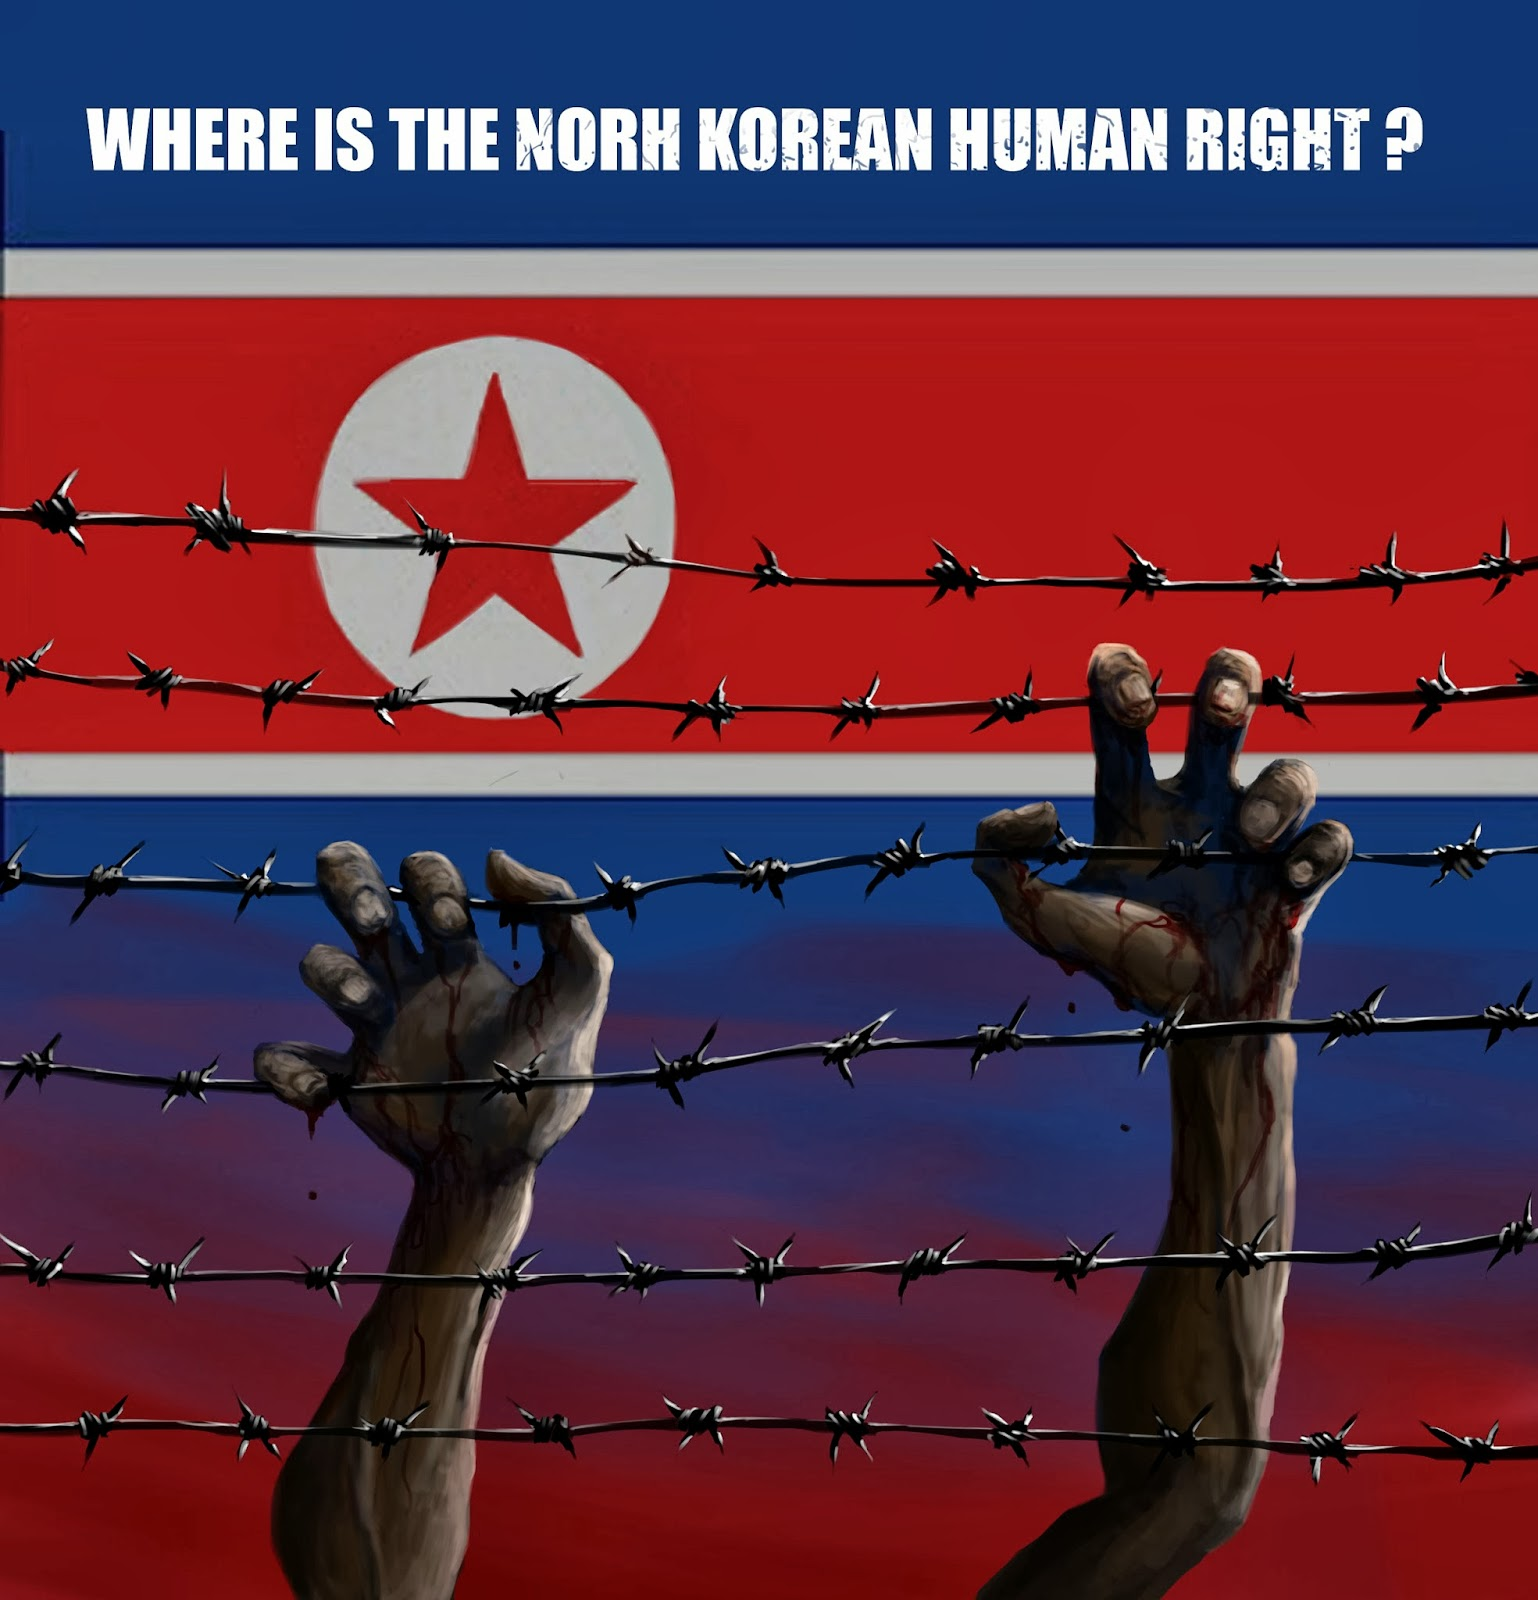 human rights in north korea According to reports from amnesty international and the us committee for human rights in north korea, by 2017 an estimated 200,000 prisoners are incarcerated in camps that are dedicated to political crimes, and subjected to forced labor, physical abuse, execution and human experimentation.